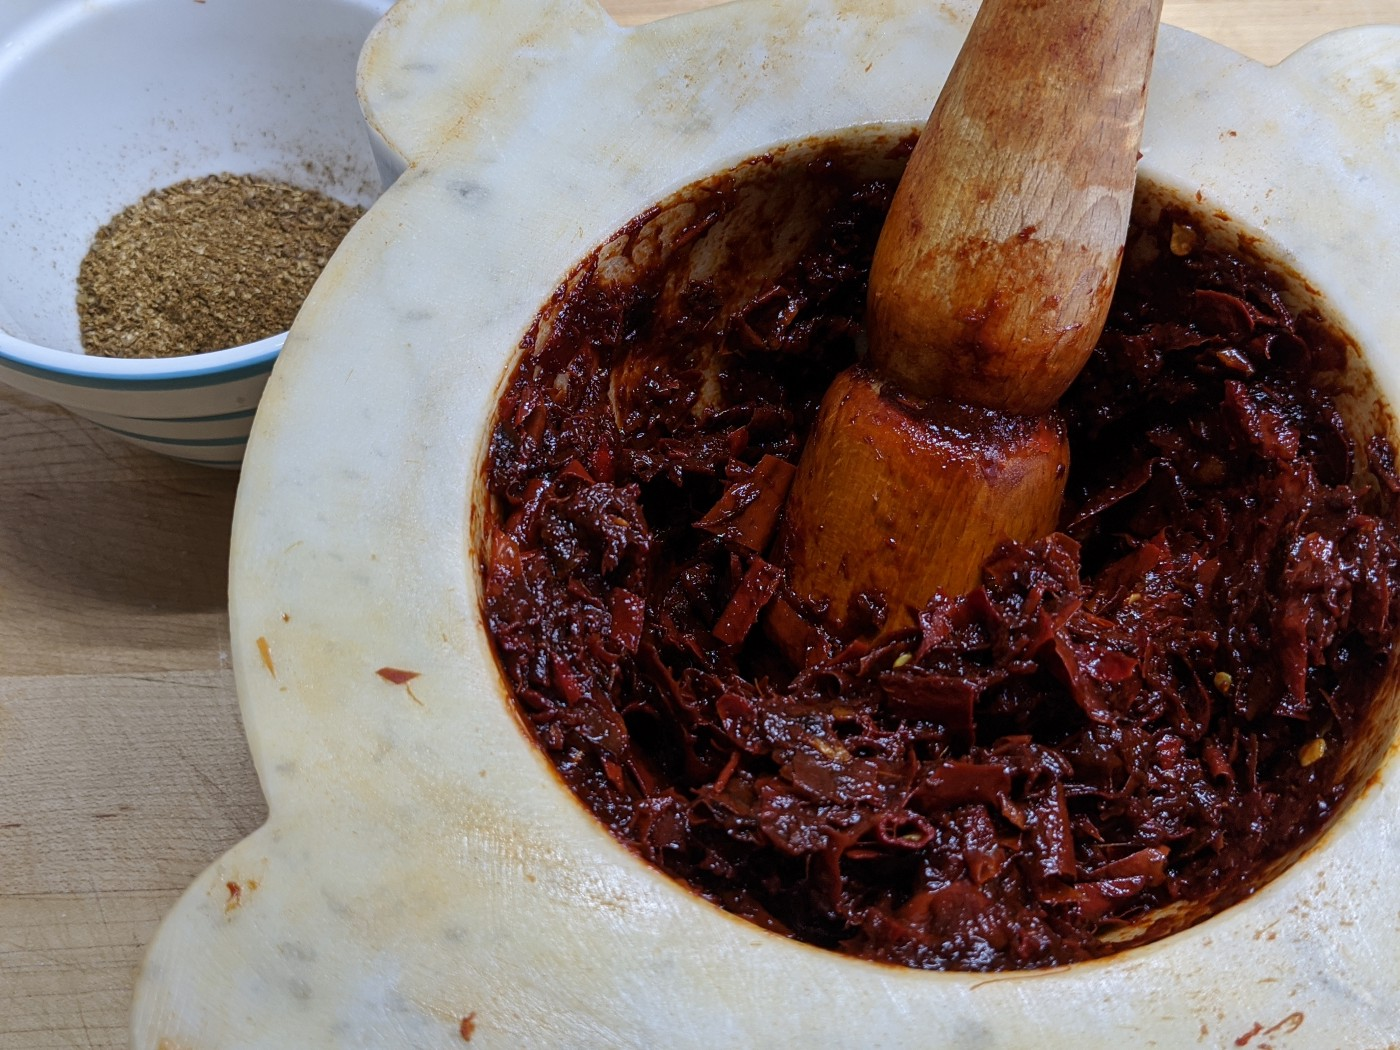 Harissa in a Mortar and Pestle